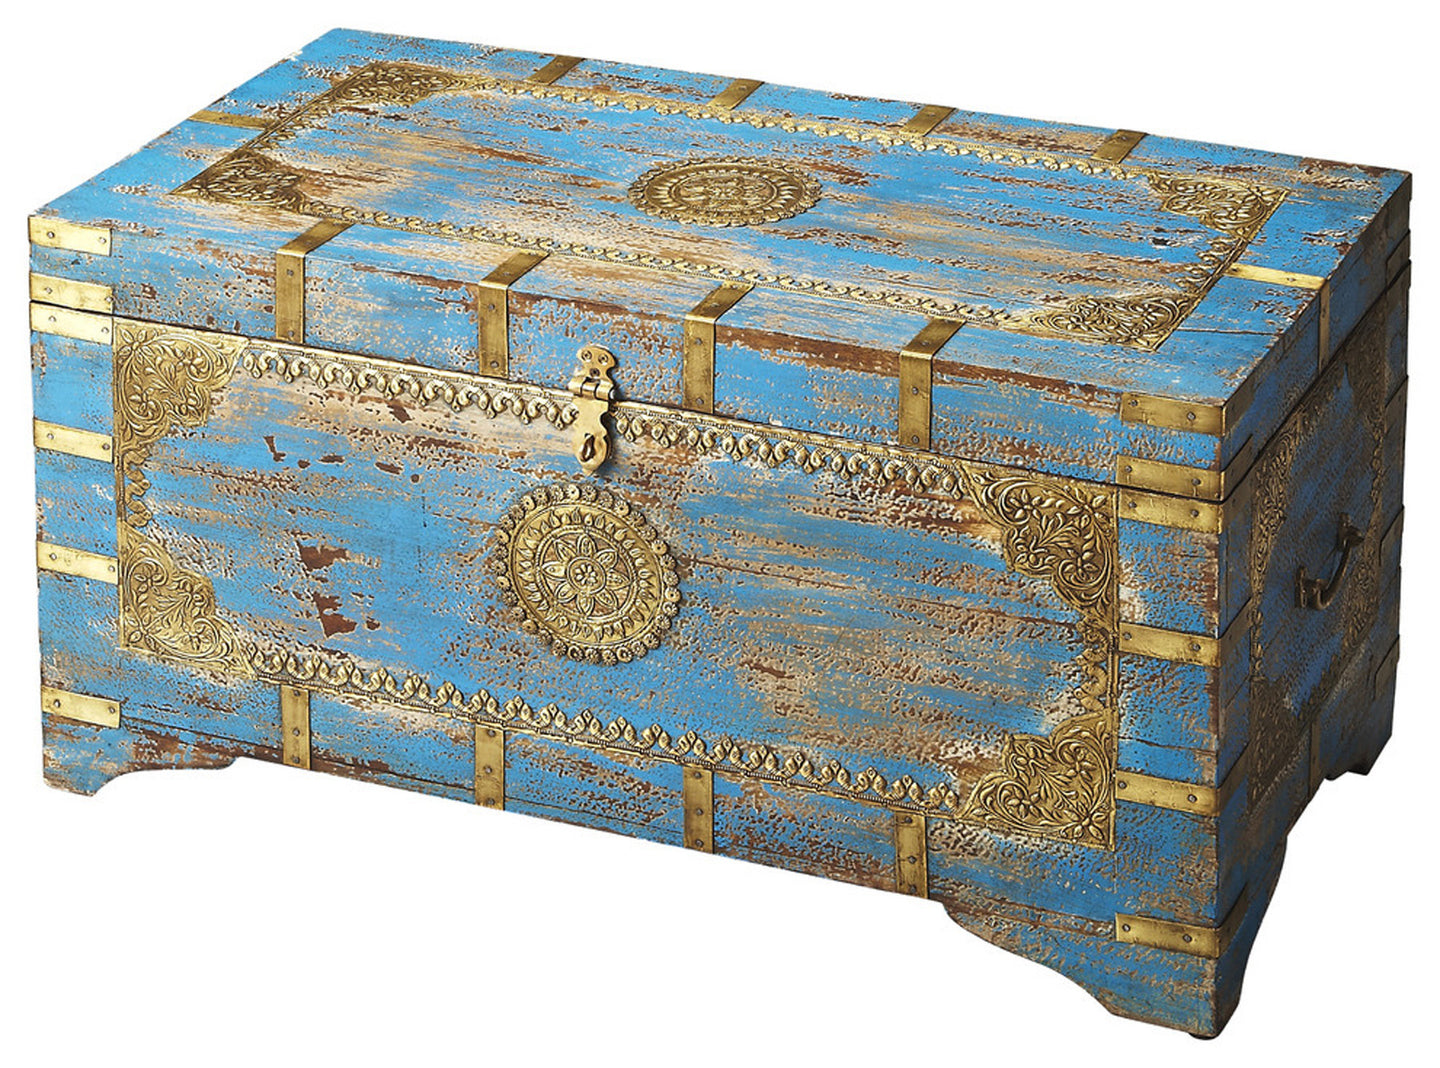 Butler Neela Painted Brass Inlay Storage Trunk by Butler Specialty Company 3387290